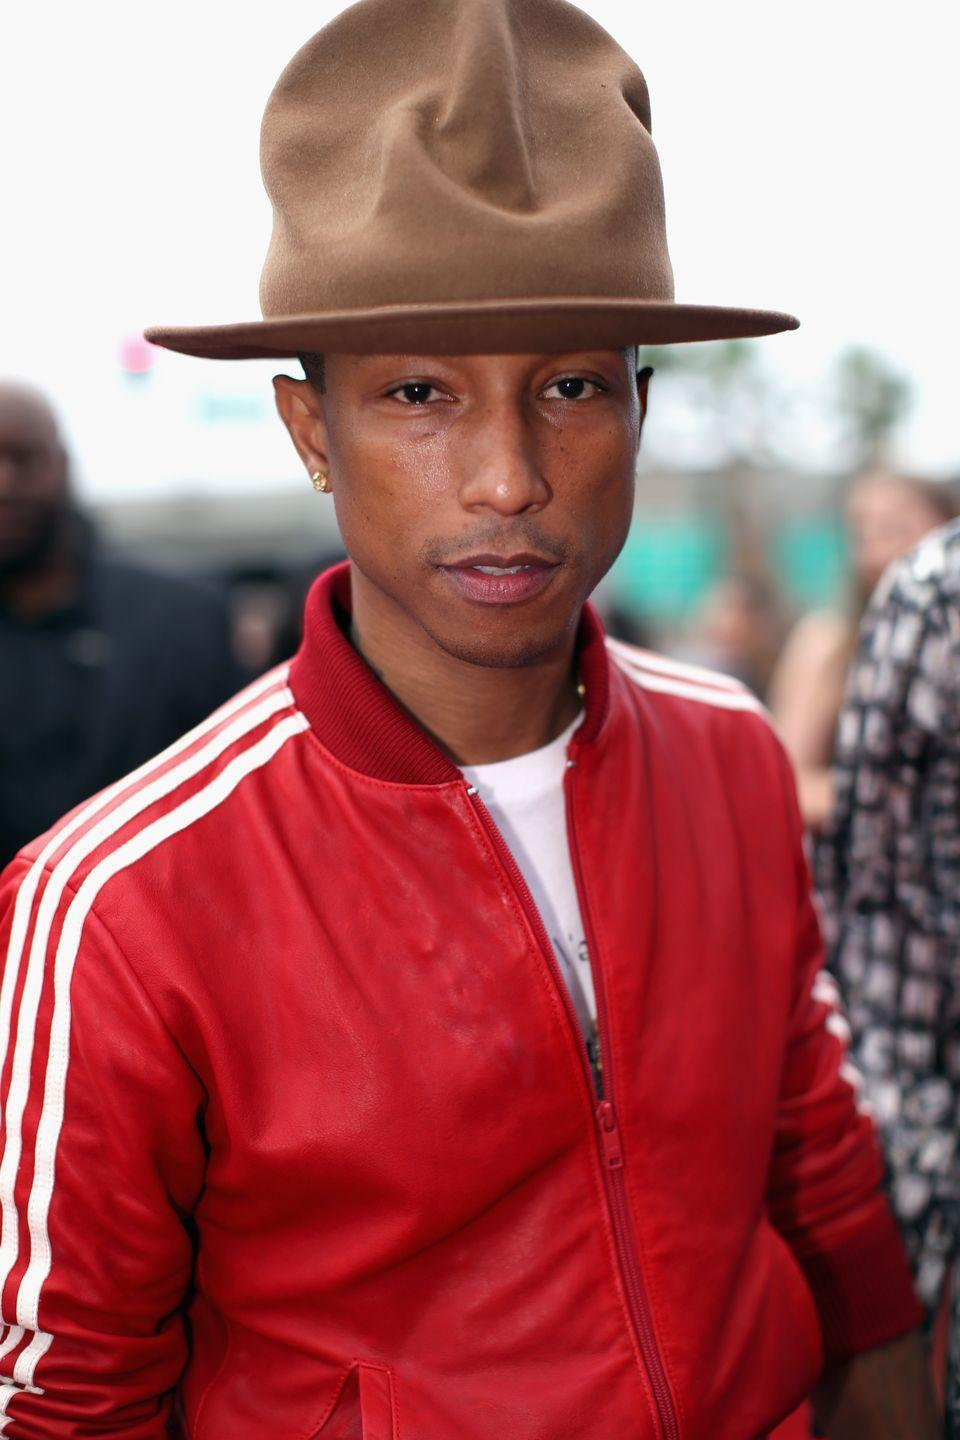 "<p>No matter where he goes, Pharell is rarely without his sky-high hat. The musician <a href=""https://www.gq.com/story/who-makes-pharrell-grammys-hat-brand"" rel=""nofollow noopener"" target=""_blank"" data-ylk=""slk:first sported"" class=""link rapid-noclick-resp"">first sported</a> the Vivienne Westwood topper at the 2014 Grammys, and now has a whole collection in different colors. The hat even has a <a href=""https://twitter.com/pharrellhat"" rel=""nofollow noopener"" target=""_blank"" data-ylk=""slk:parody Twitter account"" class=""link rapid-noclick-resp"">parody Twitter account</a>. </p>"